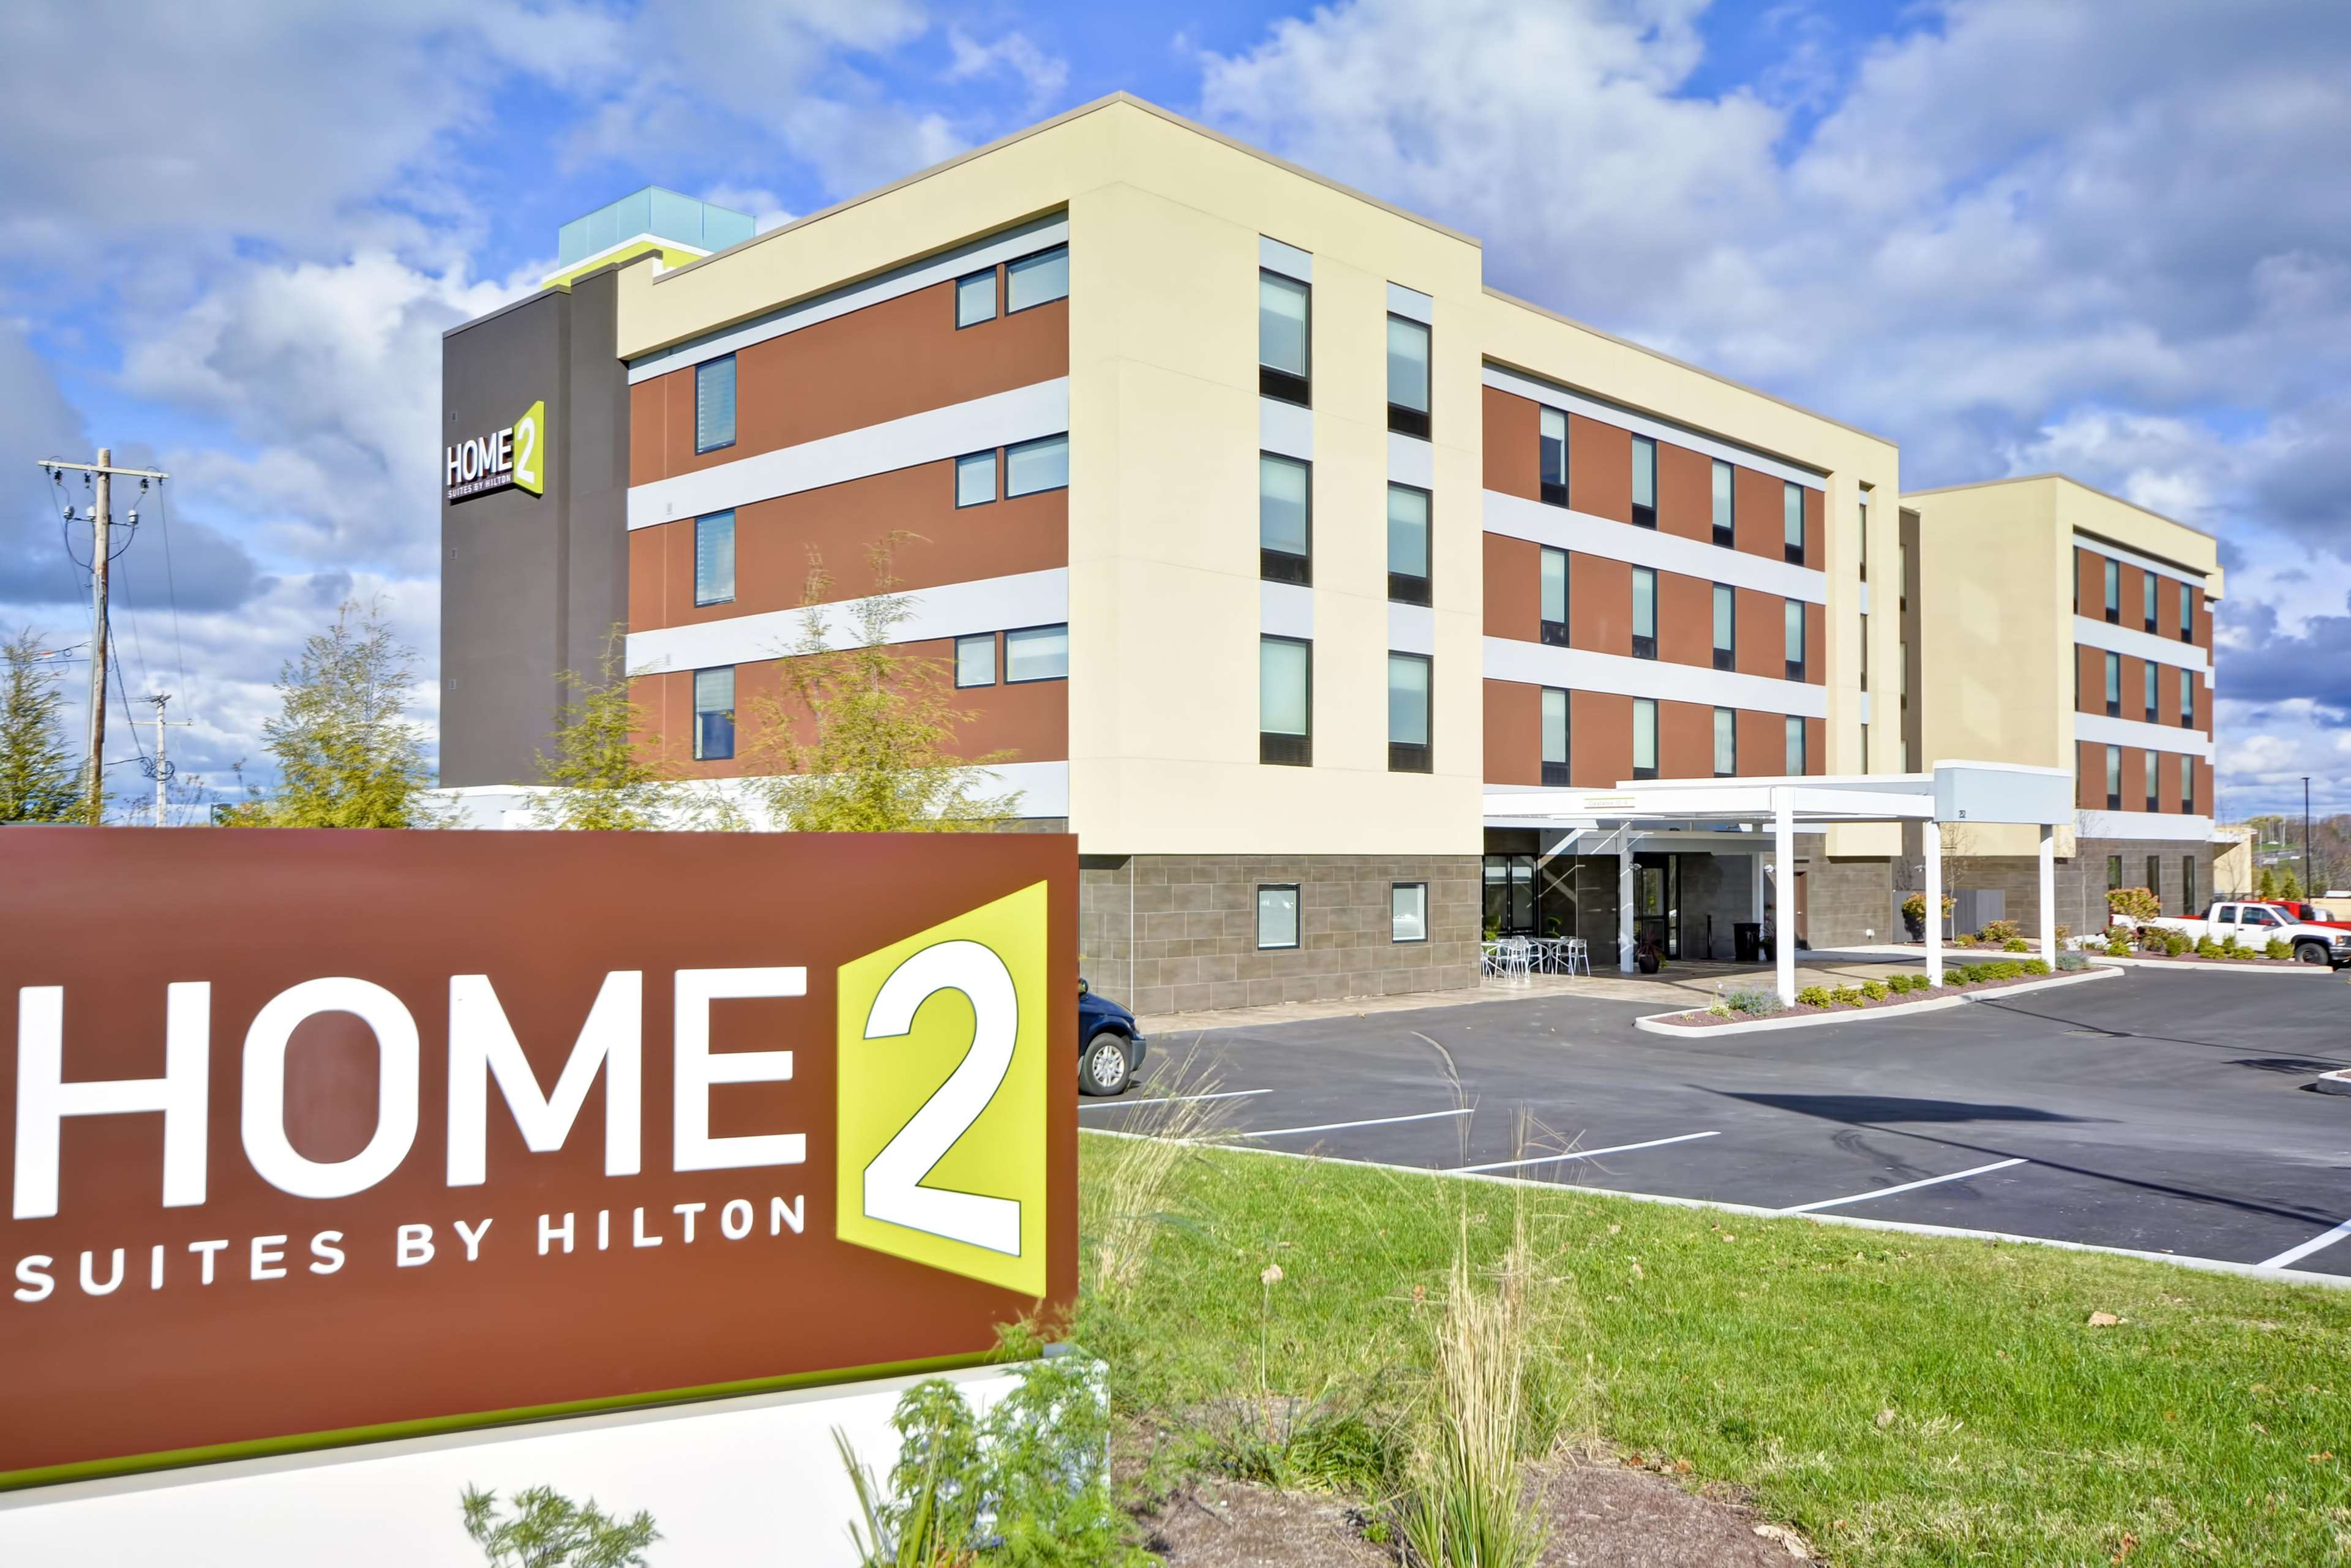 Home2 Suites by Hilton Oswego image 32